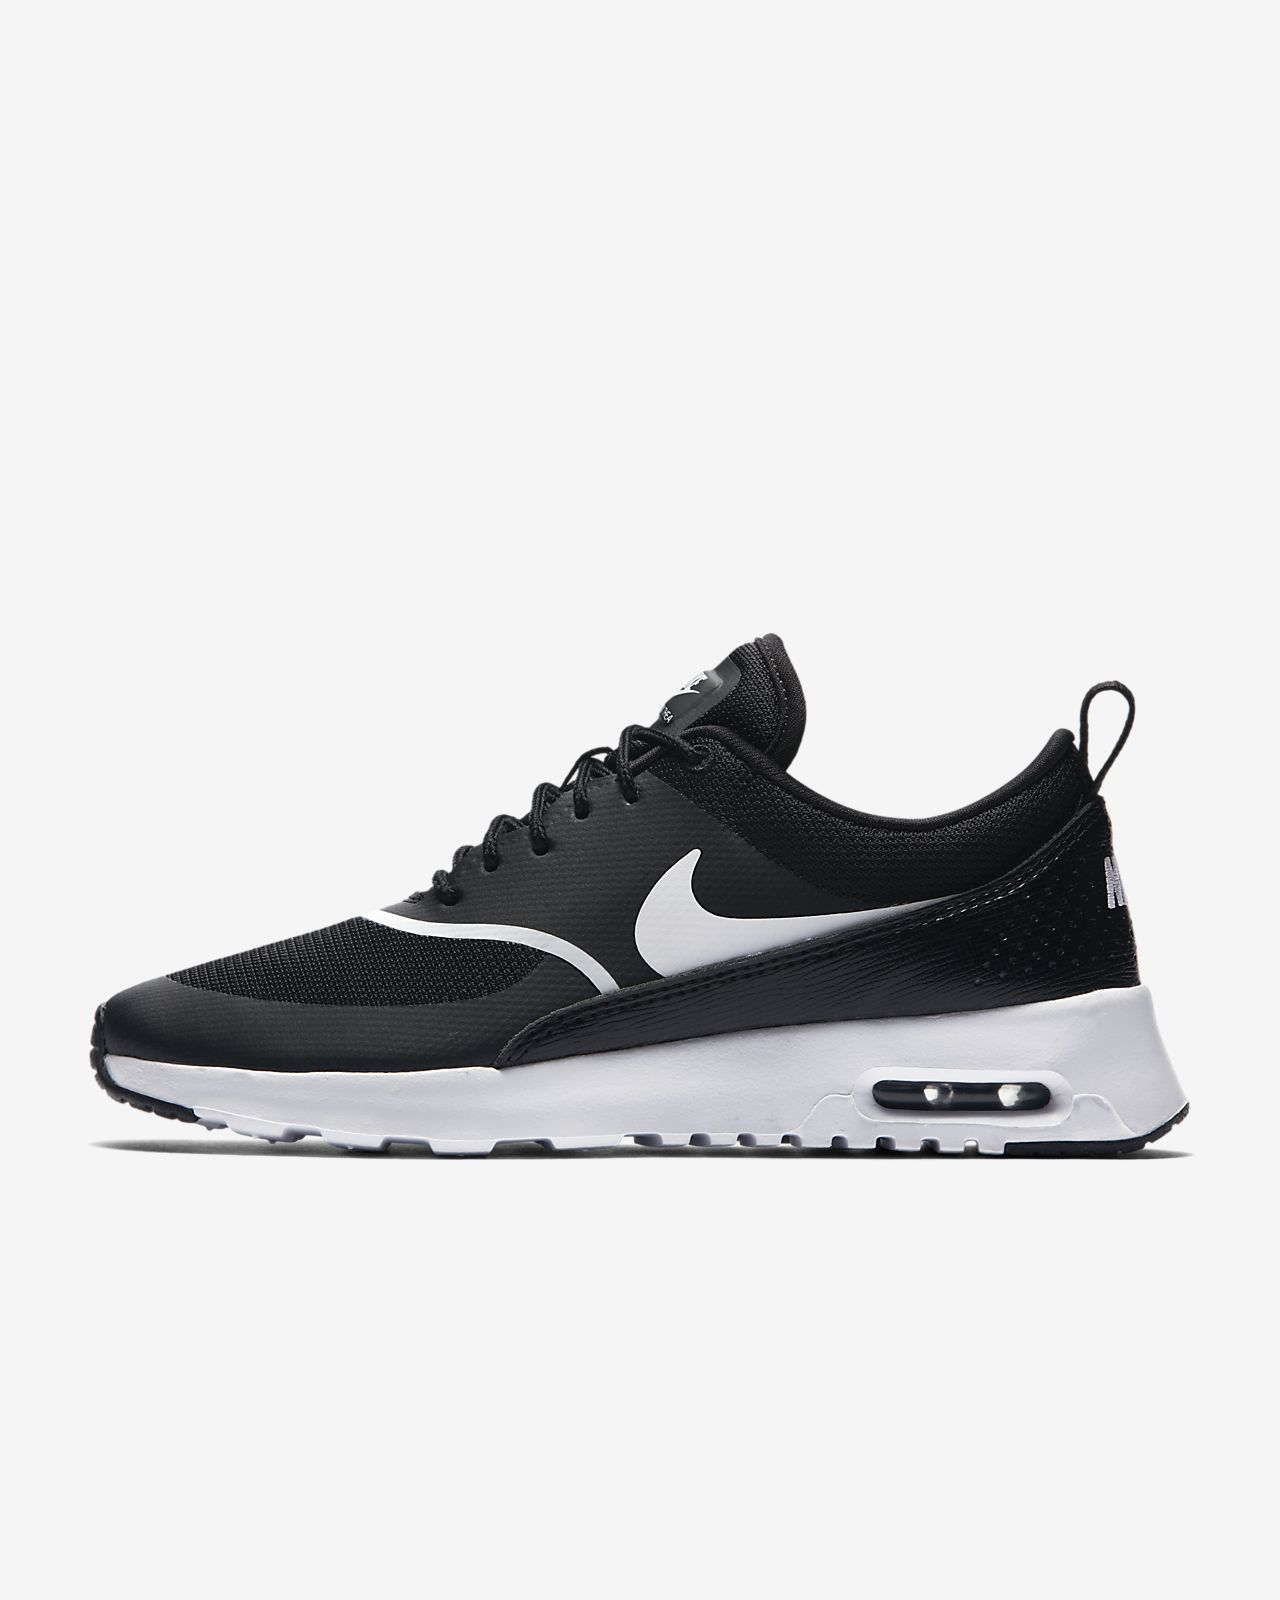 Nike Air Max Thea Women's Shoe